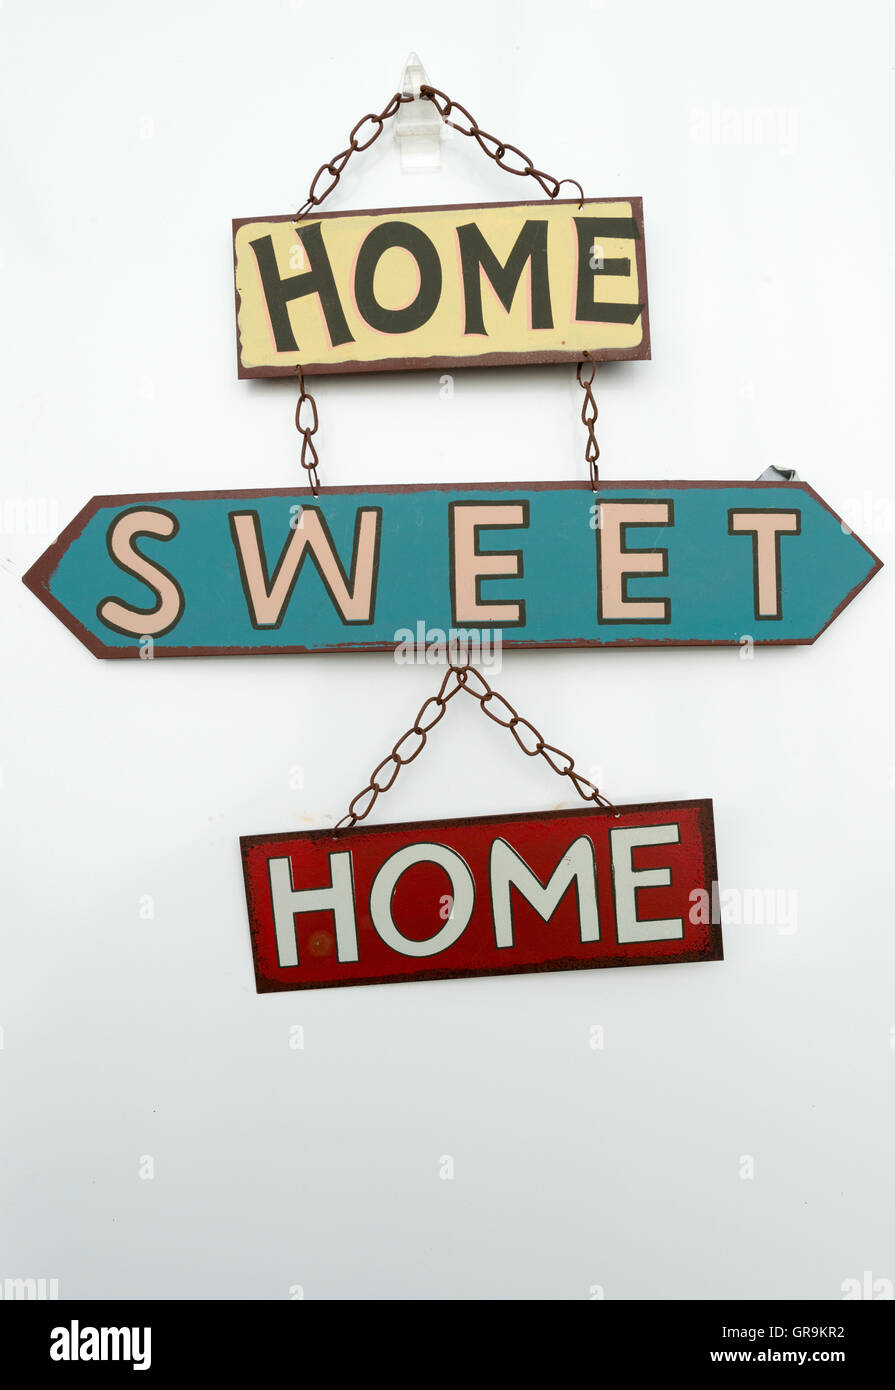 Shield Home Sweet Home - Stock Image